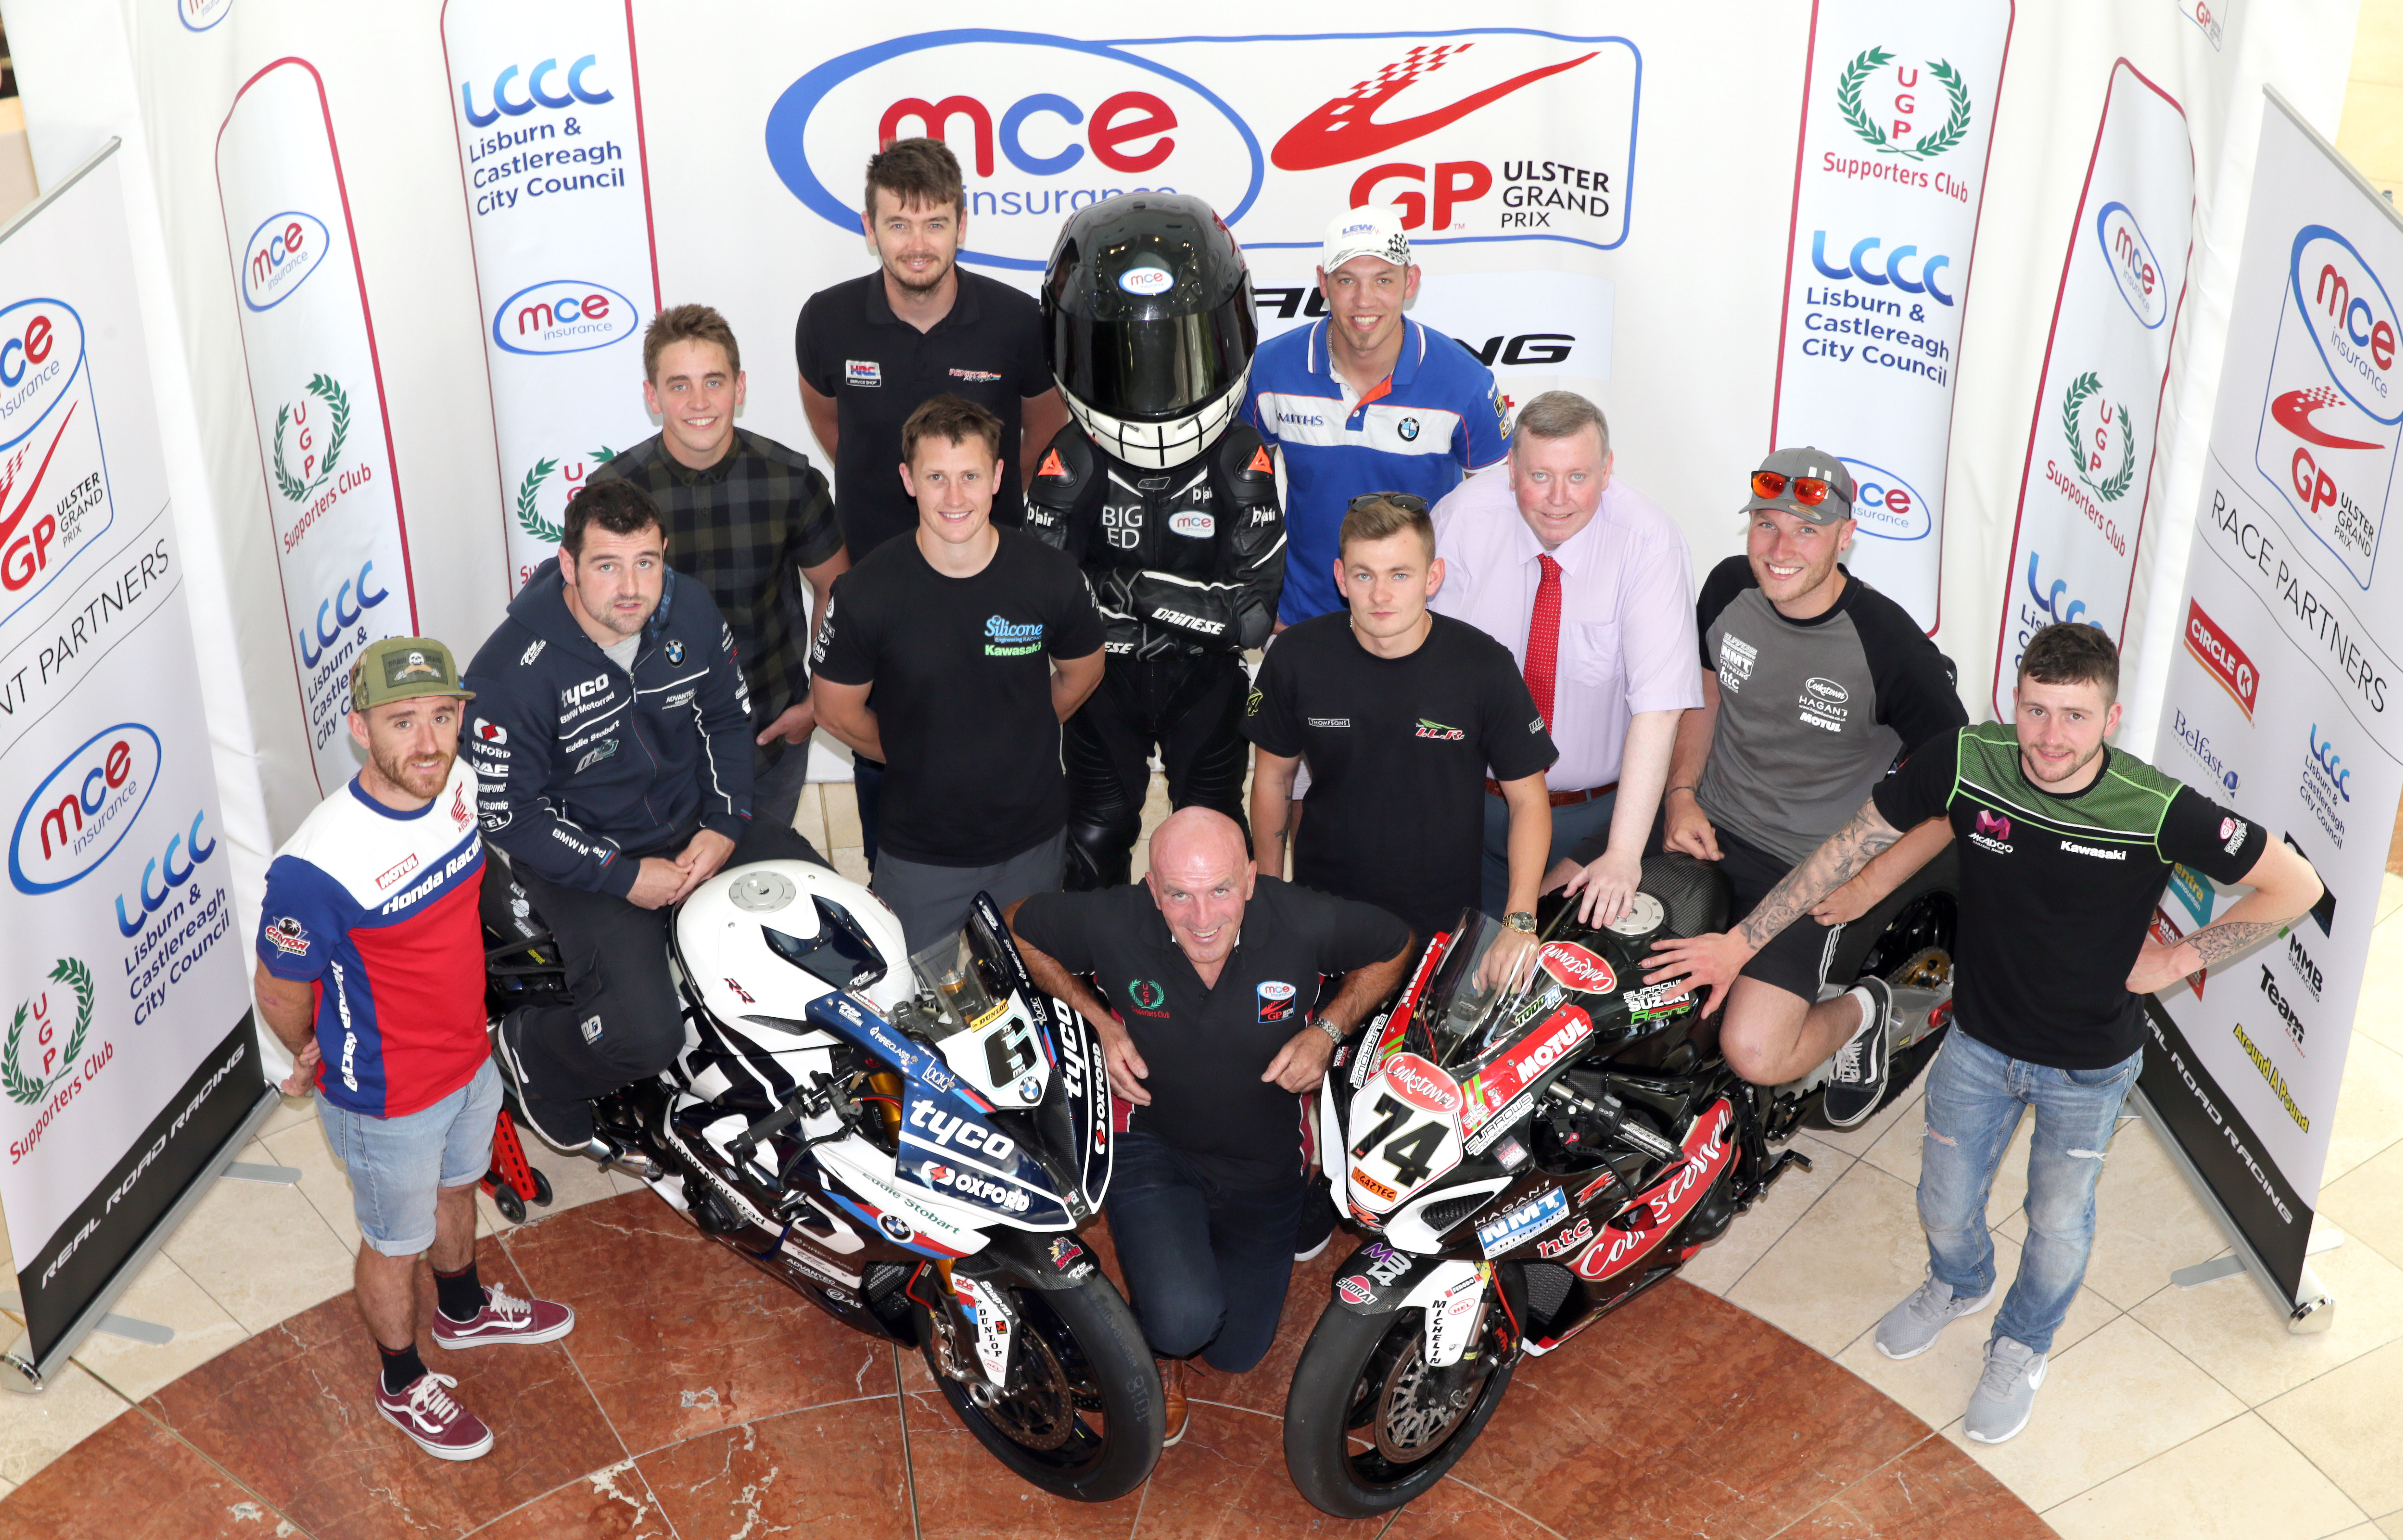 Countdown is on for another epic showdown at the 2018 MCE Ulster Grand Prix